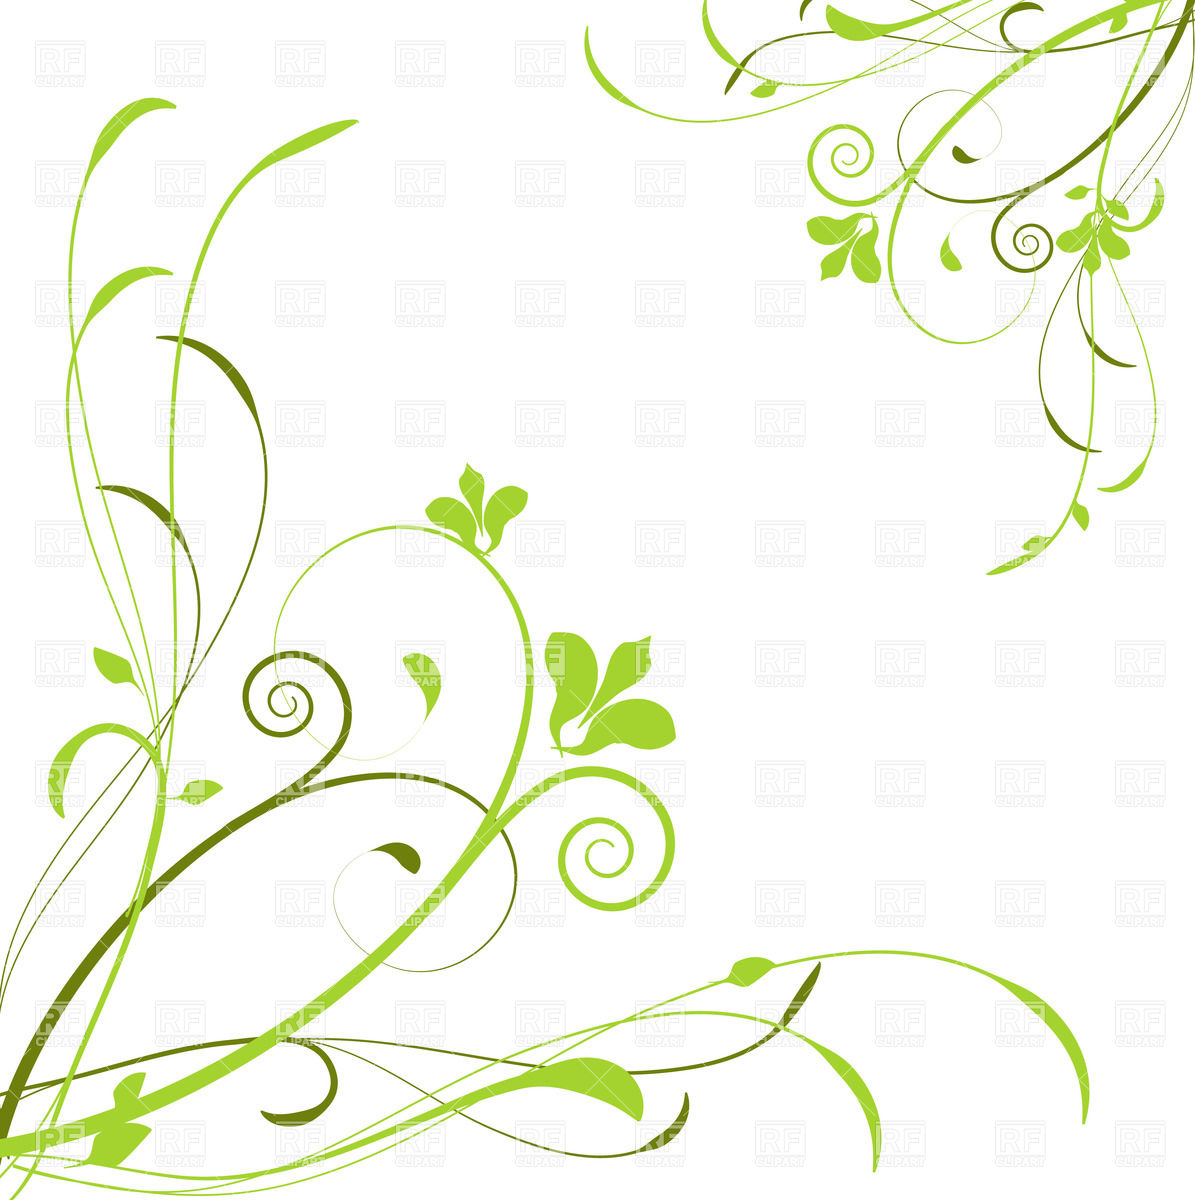 1620x1620 Abstract Floral Design 3 Clipart 1195x1200 Background With Green Curly Flowers Royalty Free Vector